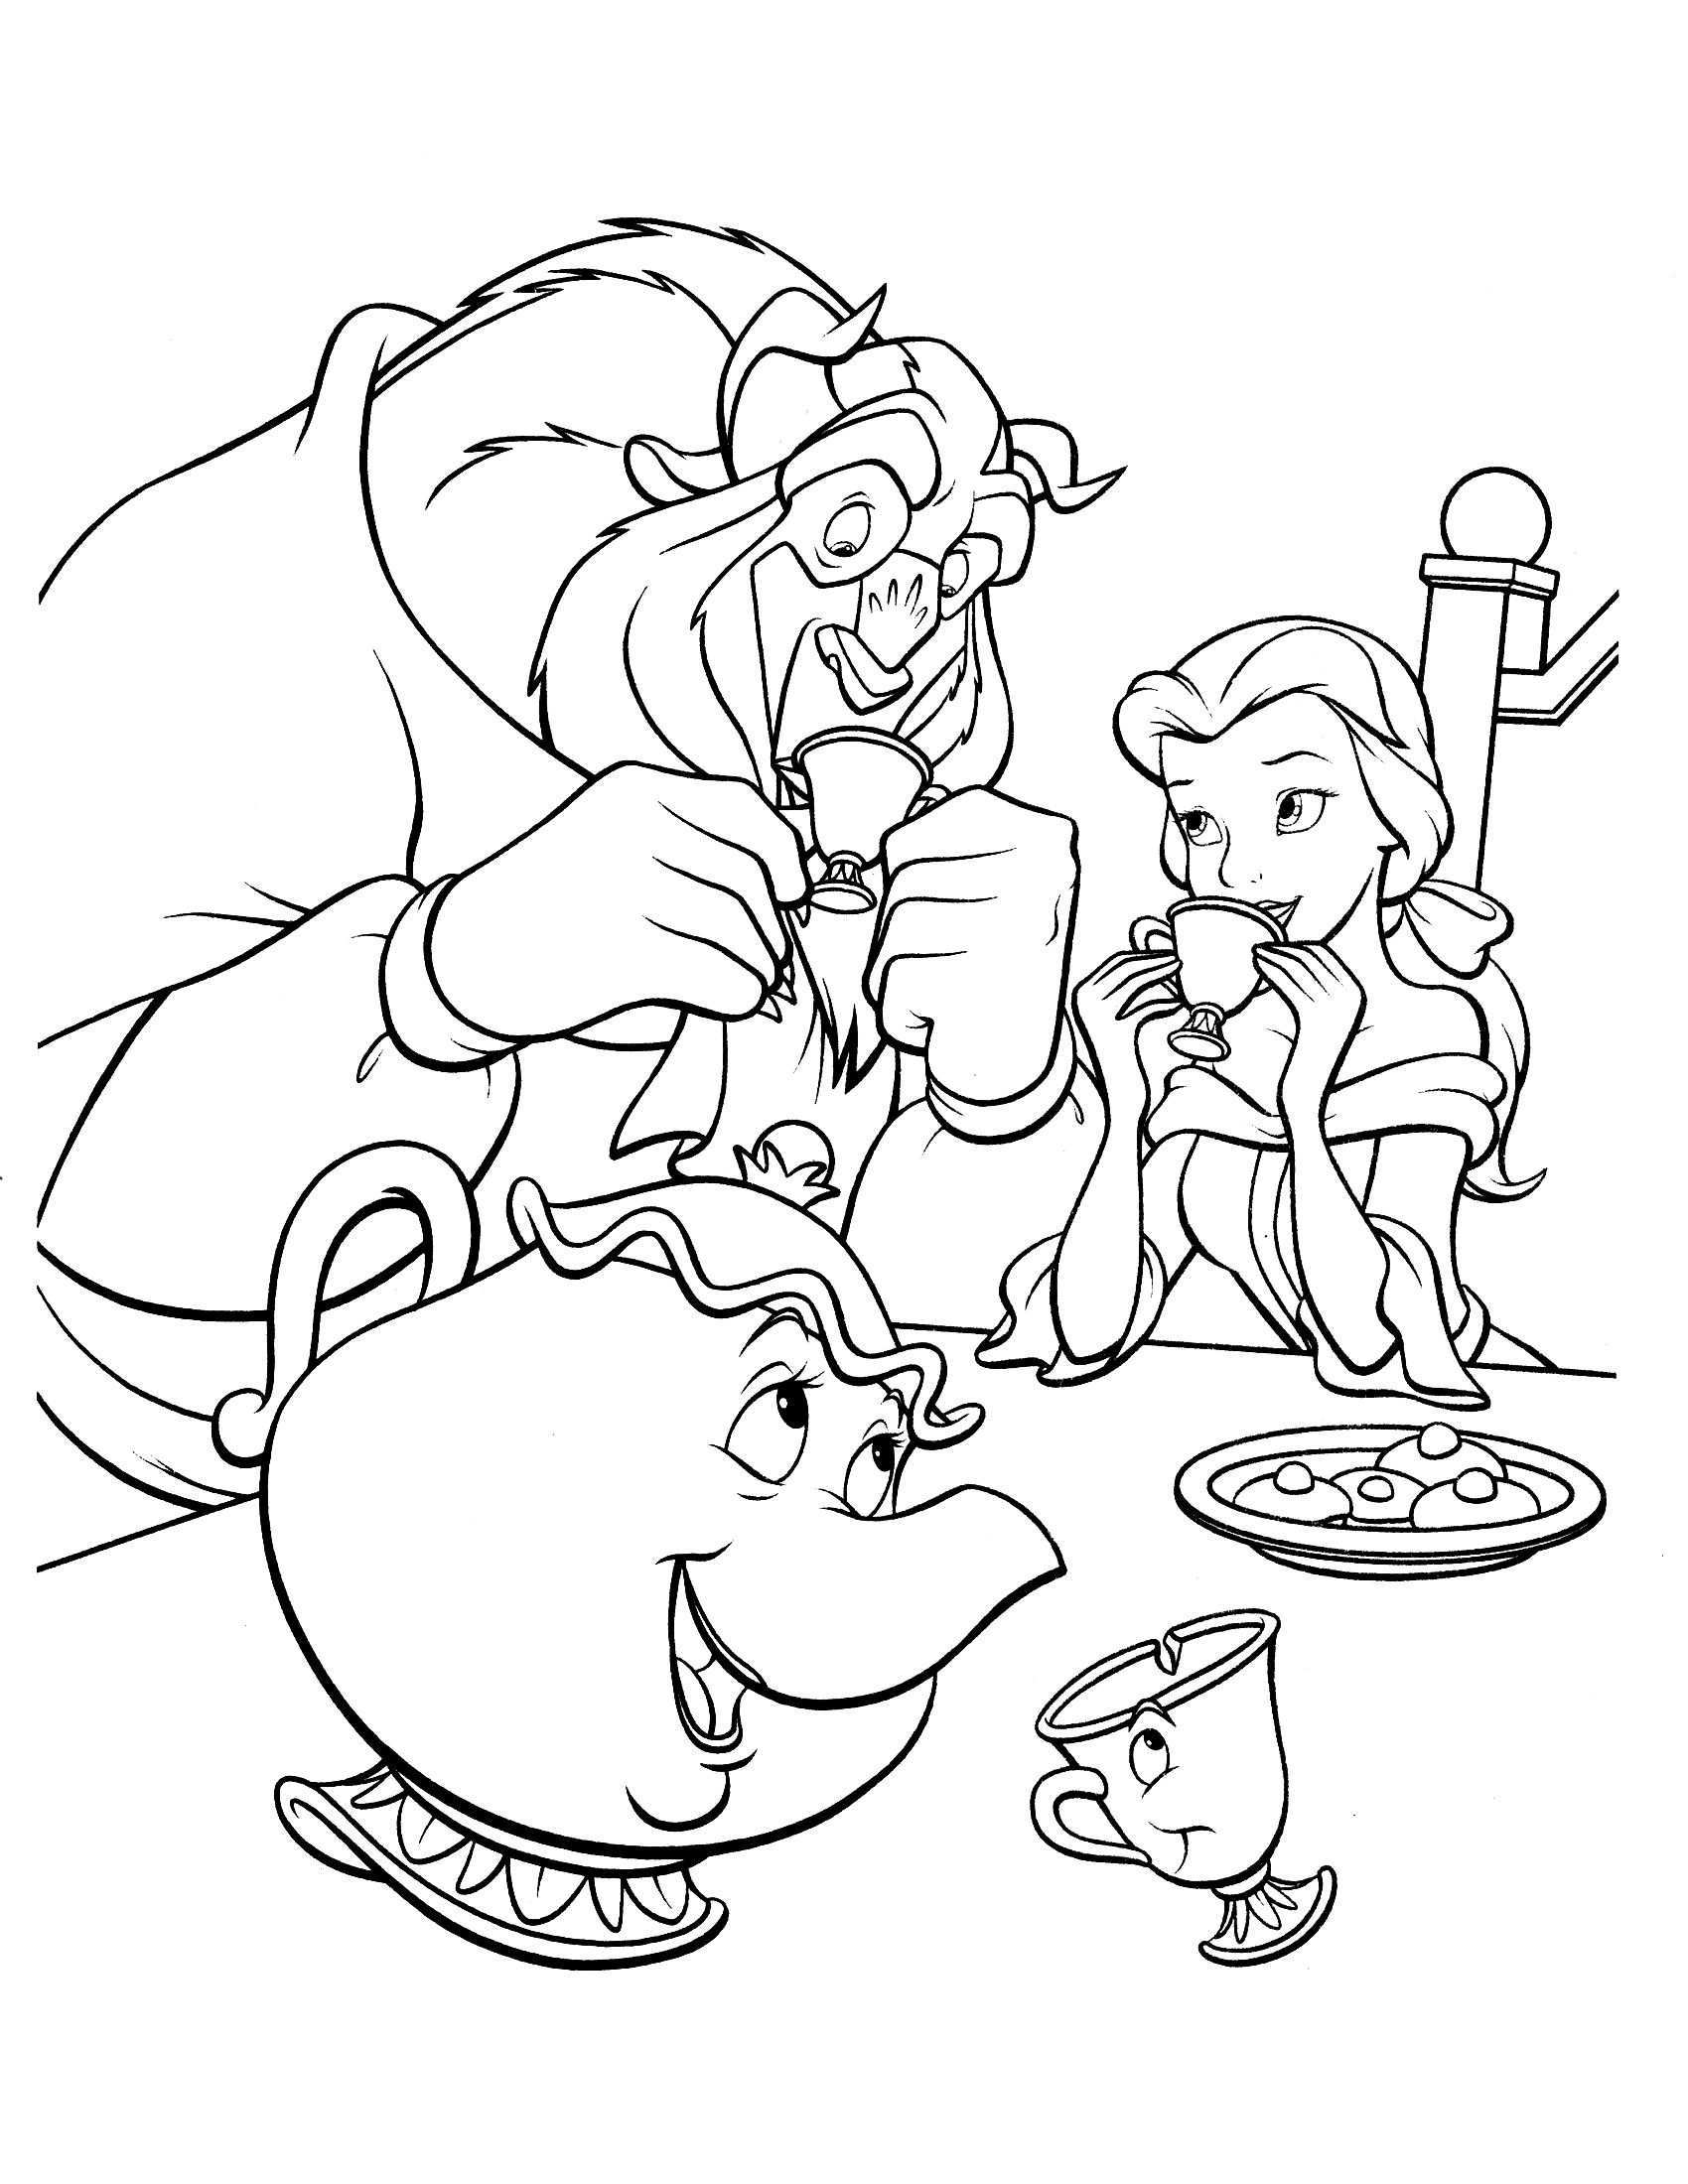 Beauty And The Beast Coloring Page Disney Coloring Pages Belle Coloring Pages Disney Princess Coloring Pages